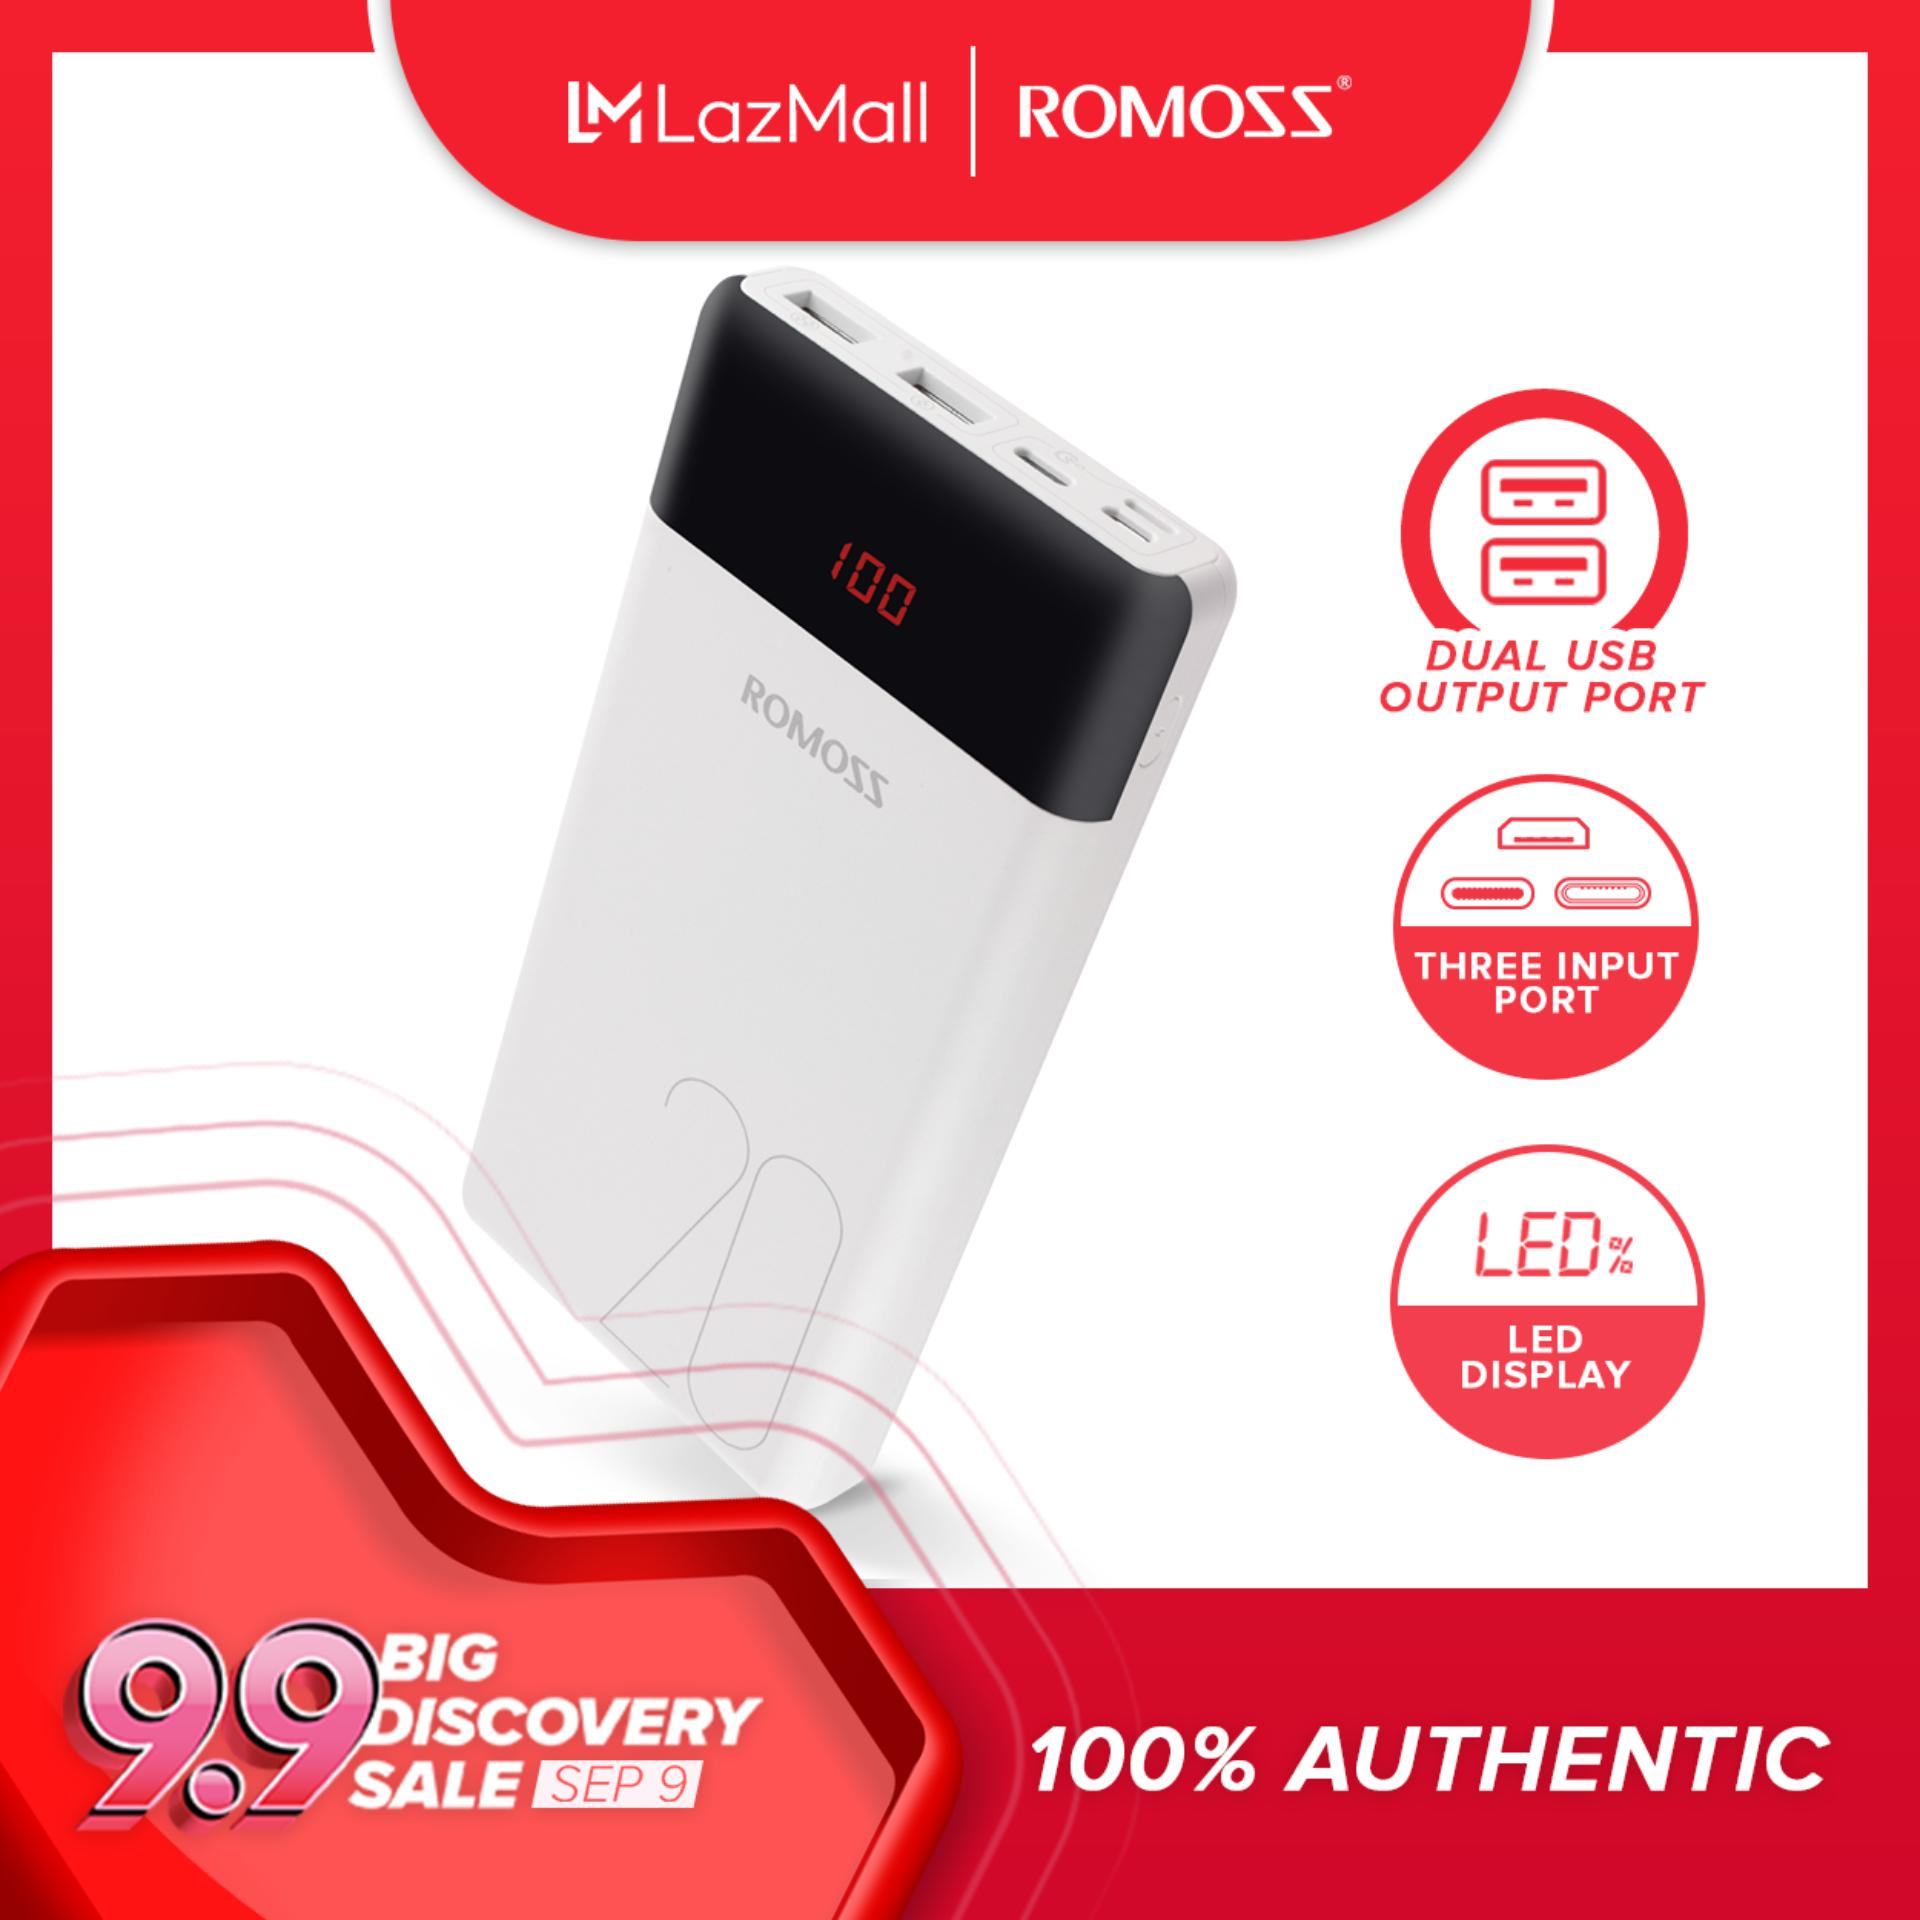 Romoss LT20 3 Input 5V:2 1A, 2 Output Max 5V:2 1A Fast Charging 20000mAh  Powerbank (White)